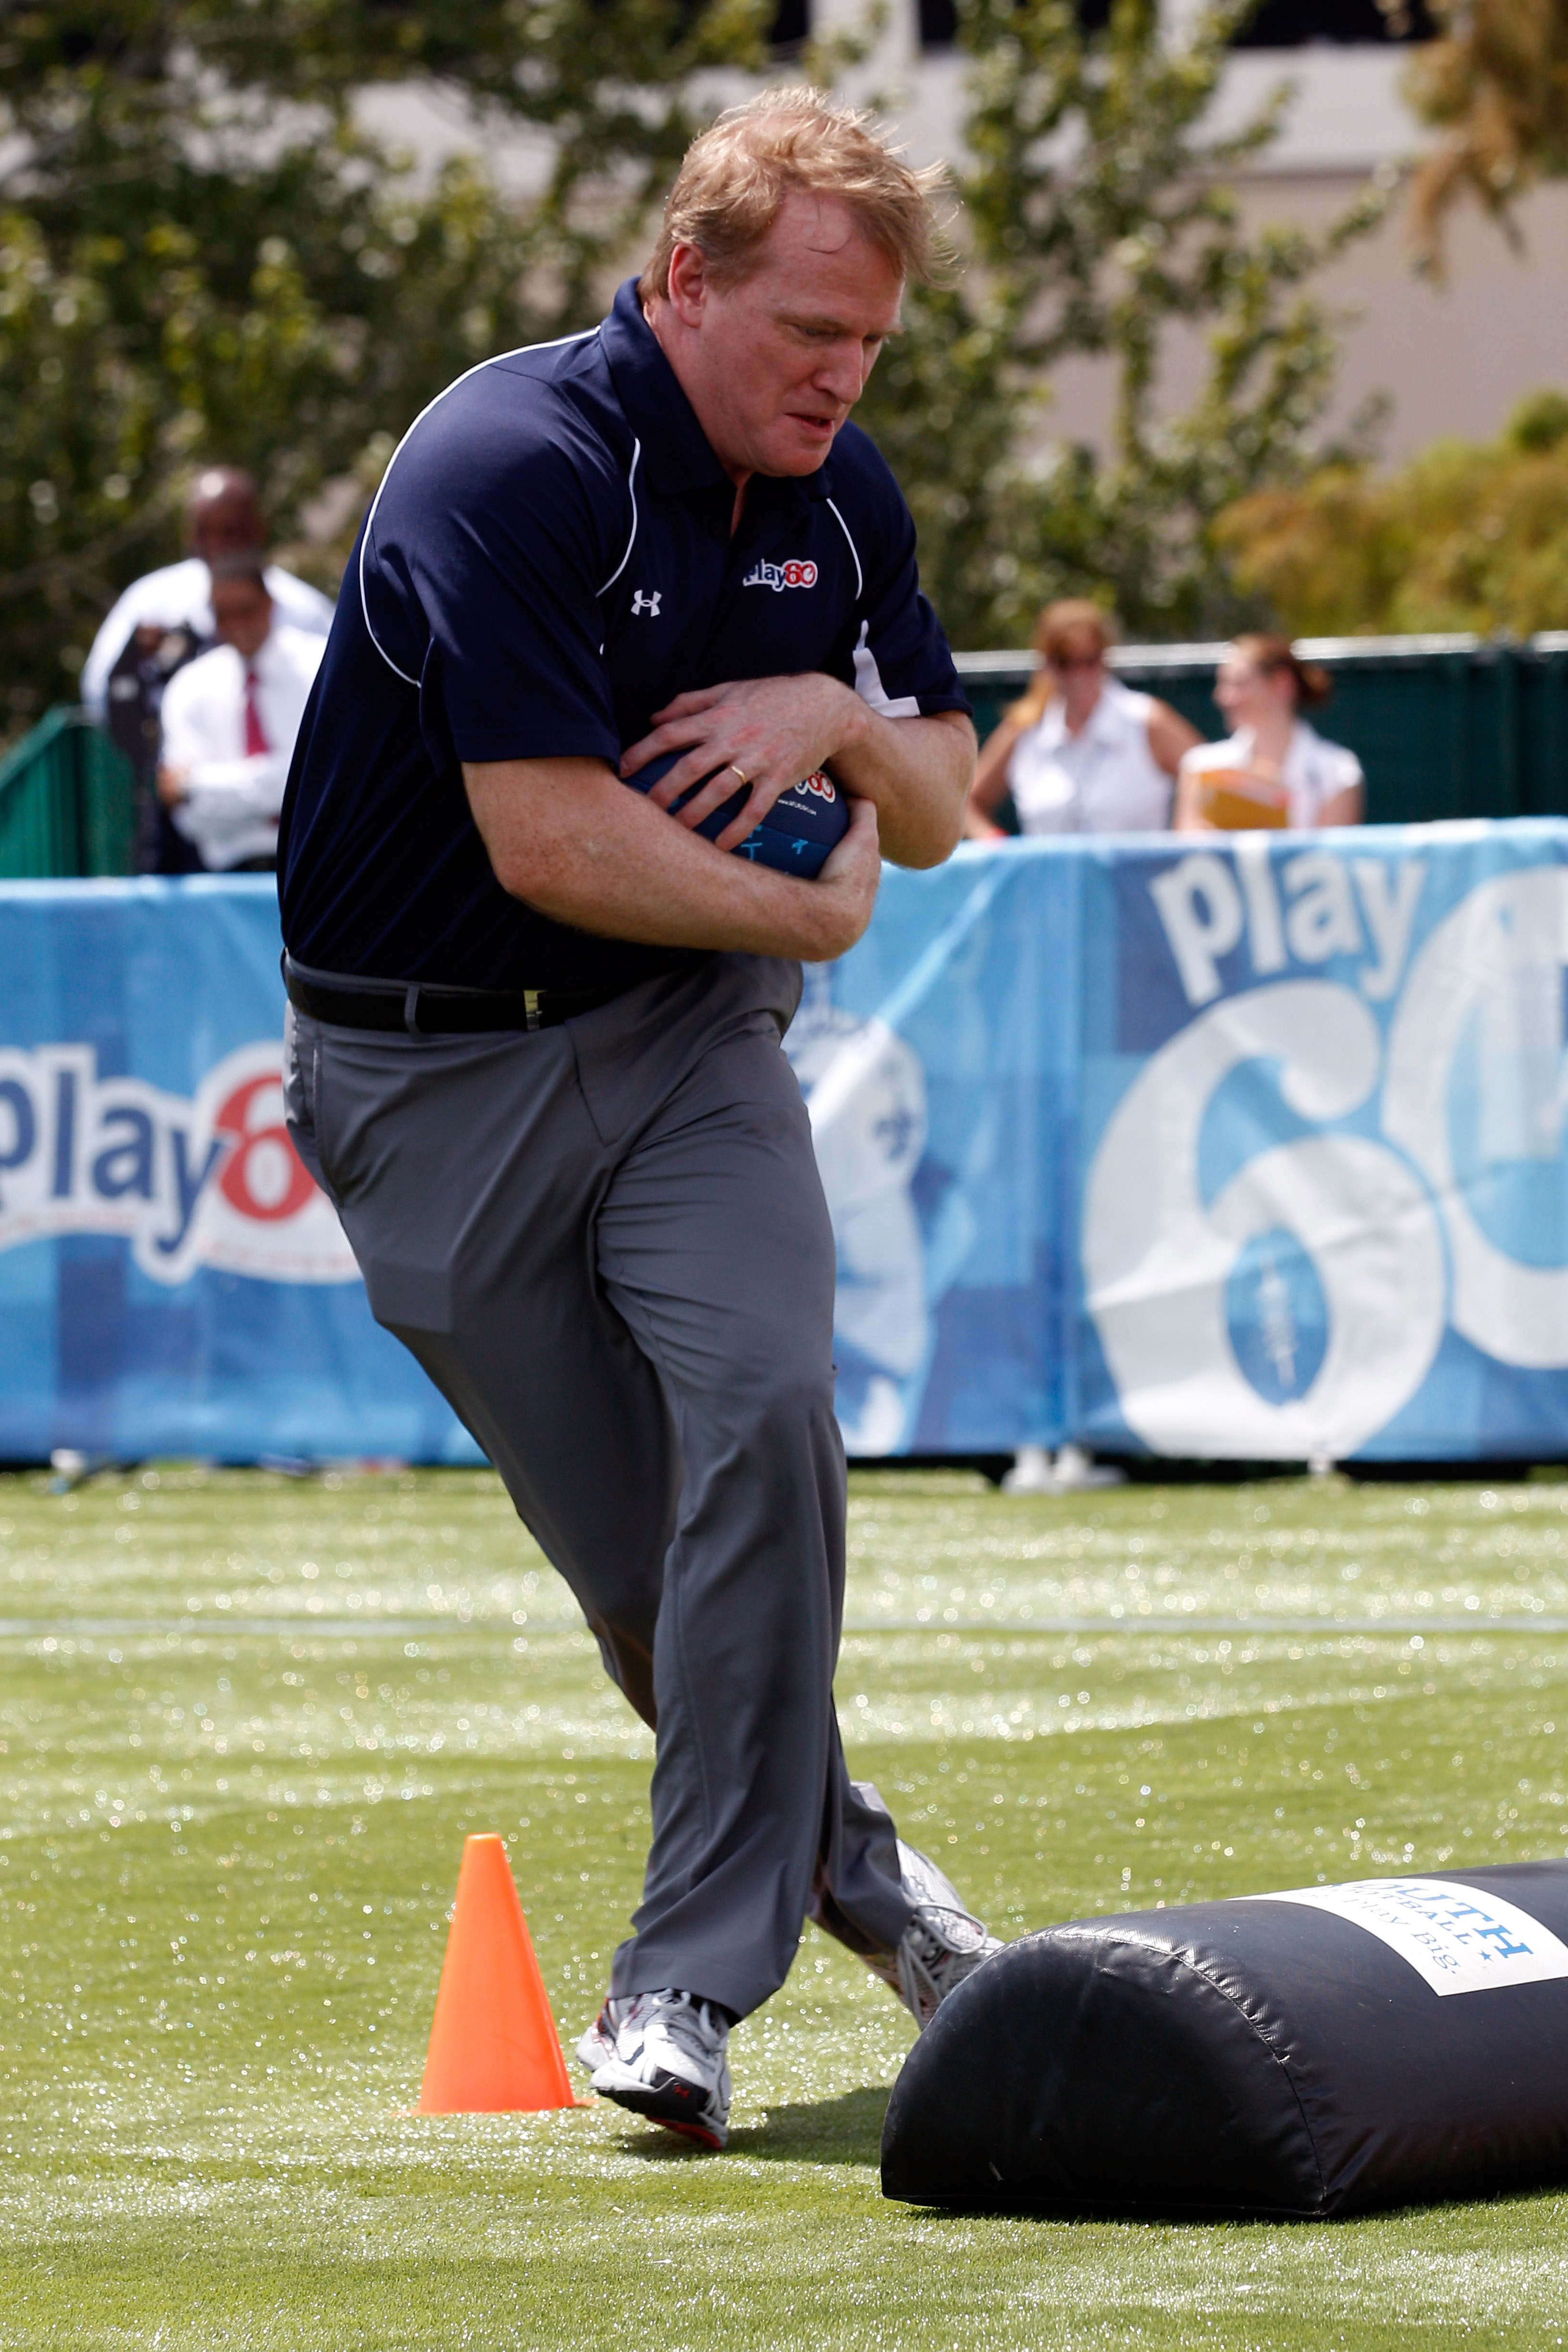 NEW ORLEANS - SEPTEMBER 08:  NFL commissioner Roger Goodell  plays on the field during the NFL�s Play 60 campaign to fight childhood obesity at Brock Elementary School September 8, 2010 in New Orleans, Louisiana. Obama joined NFL Commissioner Roger Goodel